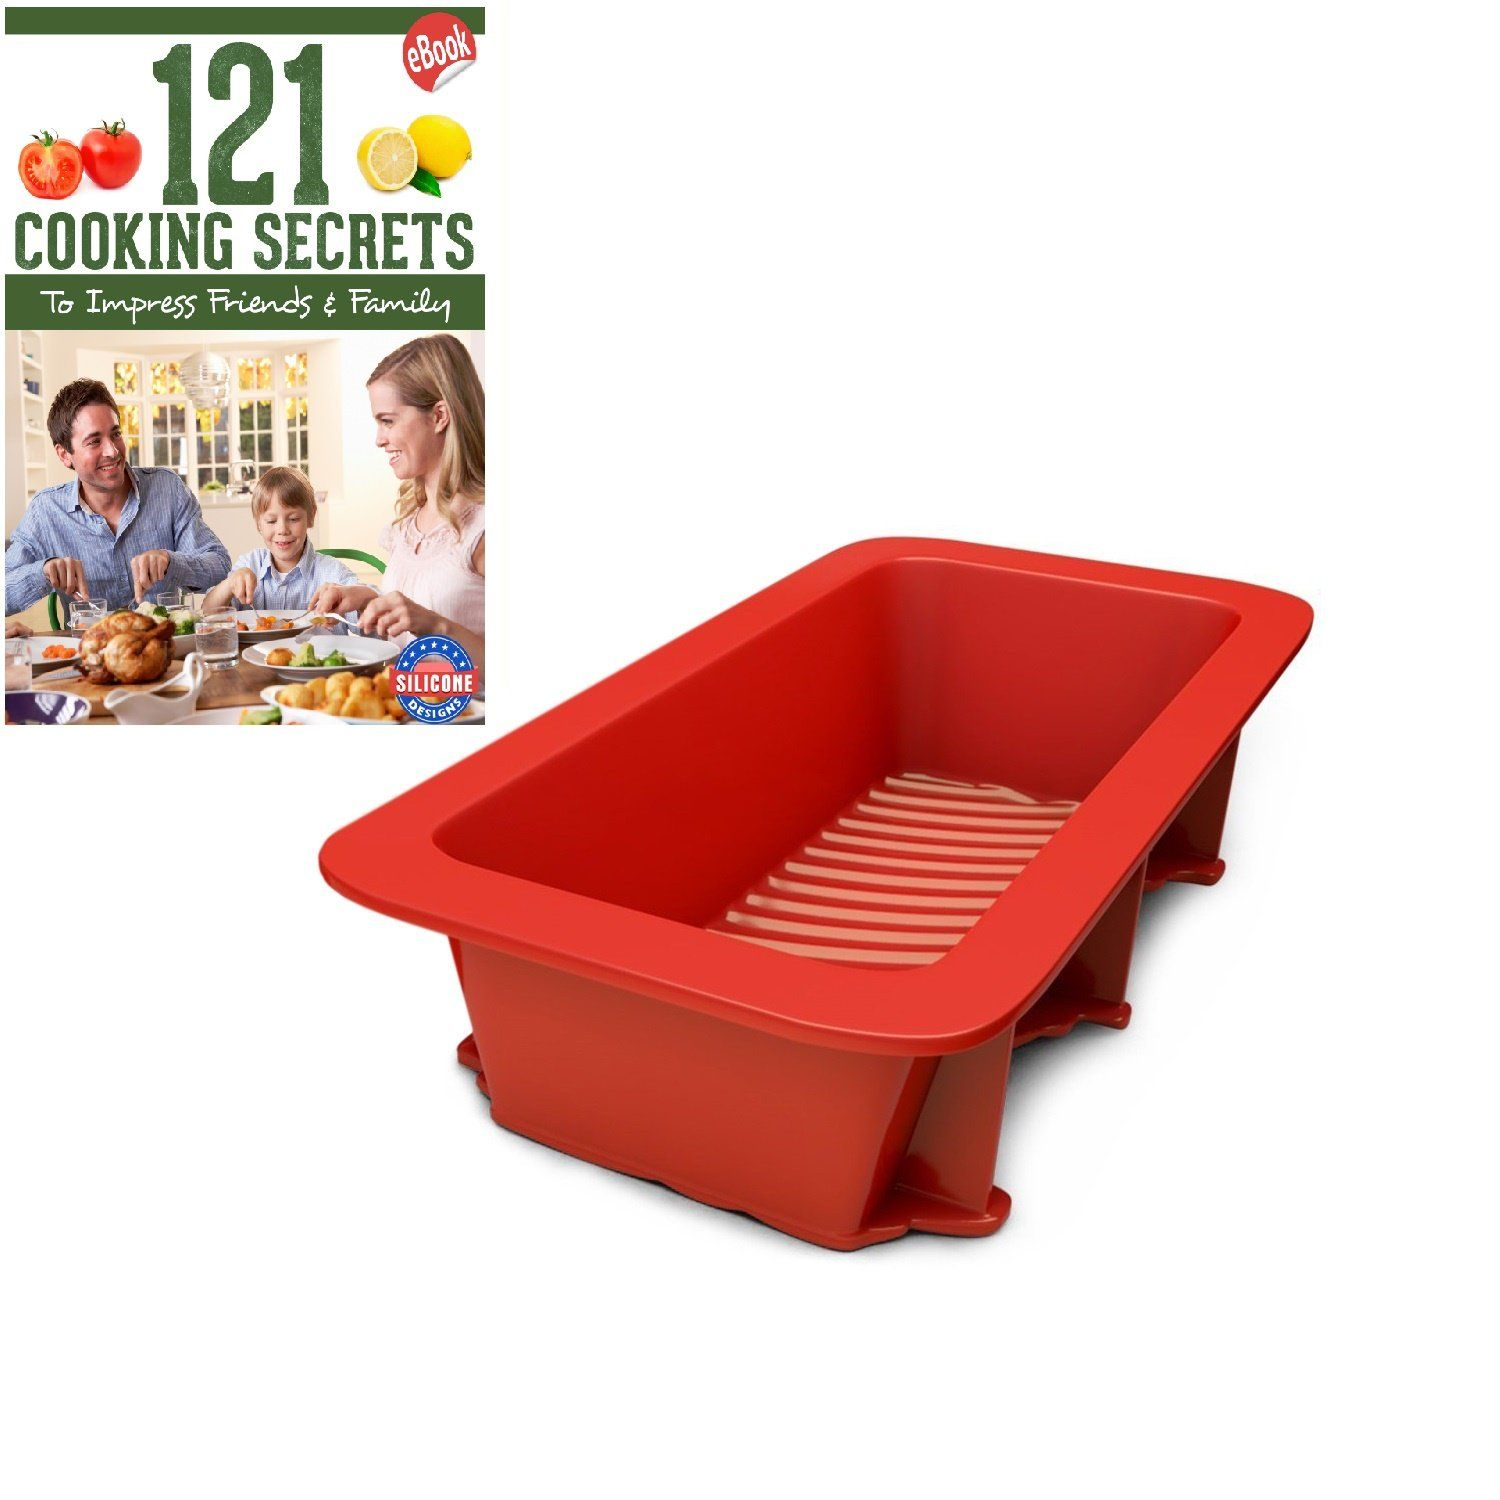 Silicone bread and loaf pan set of 1 red nonstick commercial silicone bread and loaf pan set of 1 red nonstick commercial grade plus bread fandeluxe Document